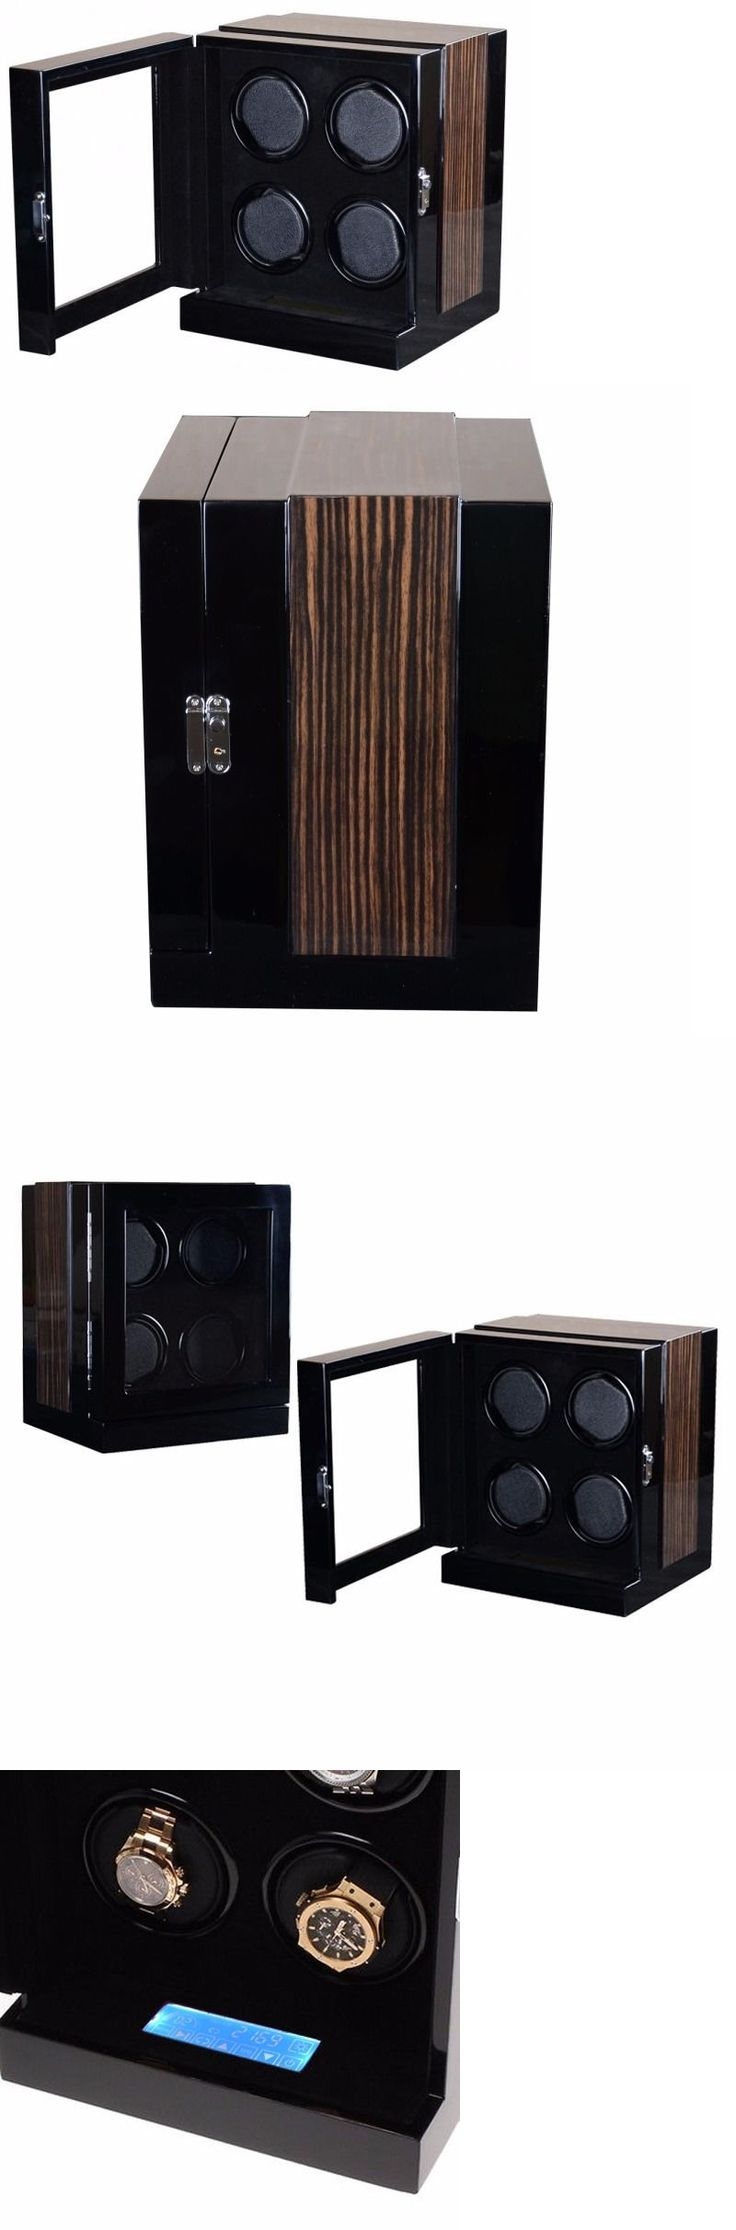 Boxes Cases and Watch Winders 173695: 4 Watch Winder Black Wood Velvet Lcd Touch Digital Led Japan Motor Box 8202 Demo BUY IT NOW ONLY: $249.0